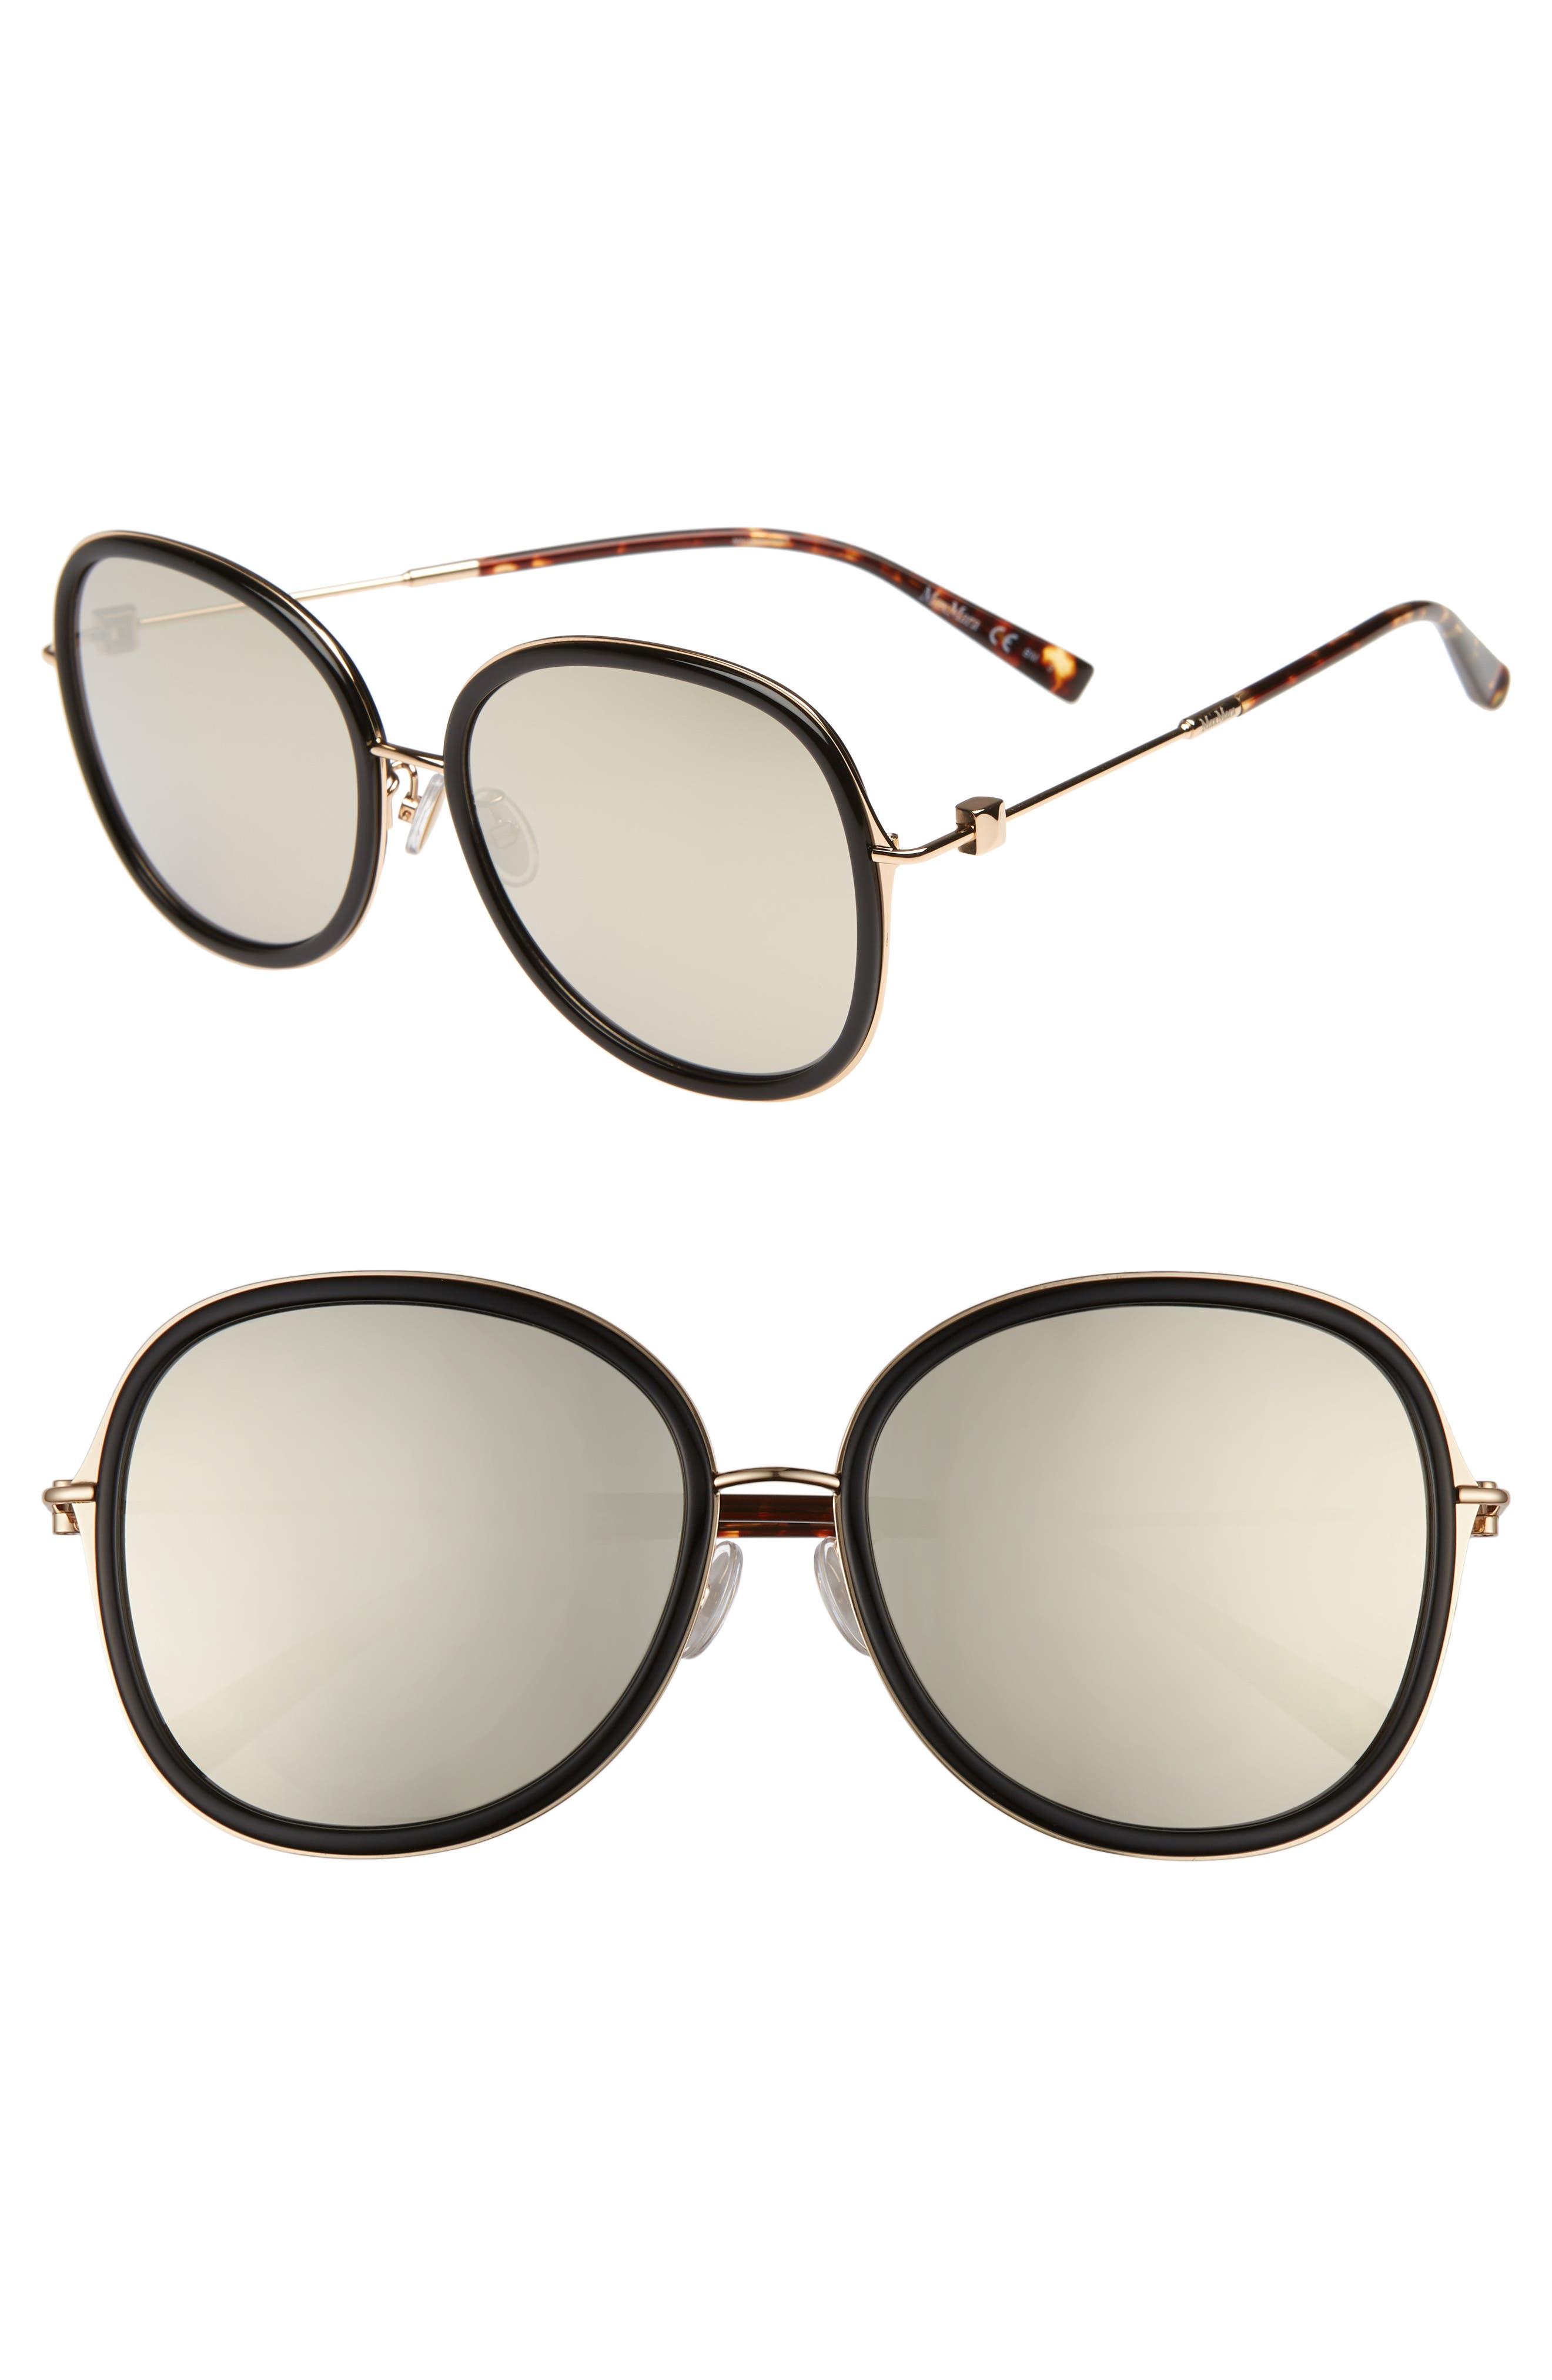 Marilyn 58mm Special Fit Round Sunglasses,                         Main,                         color, BLACK